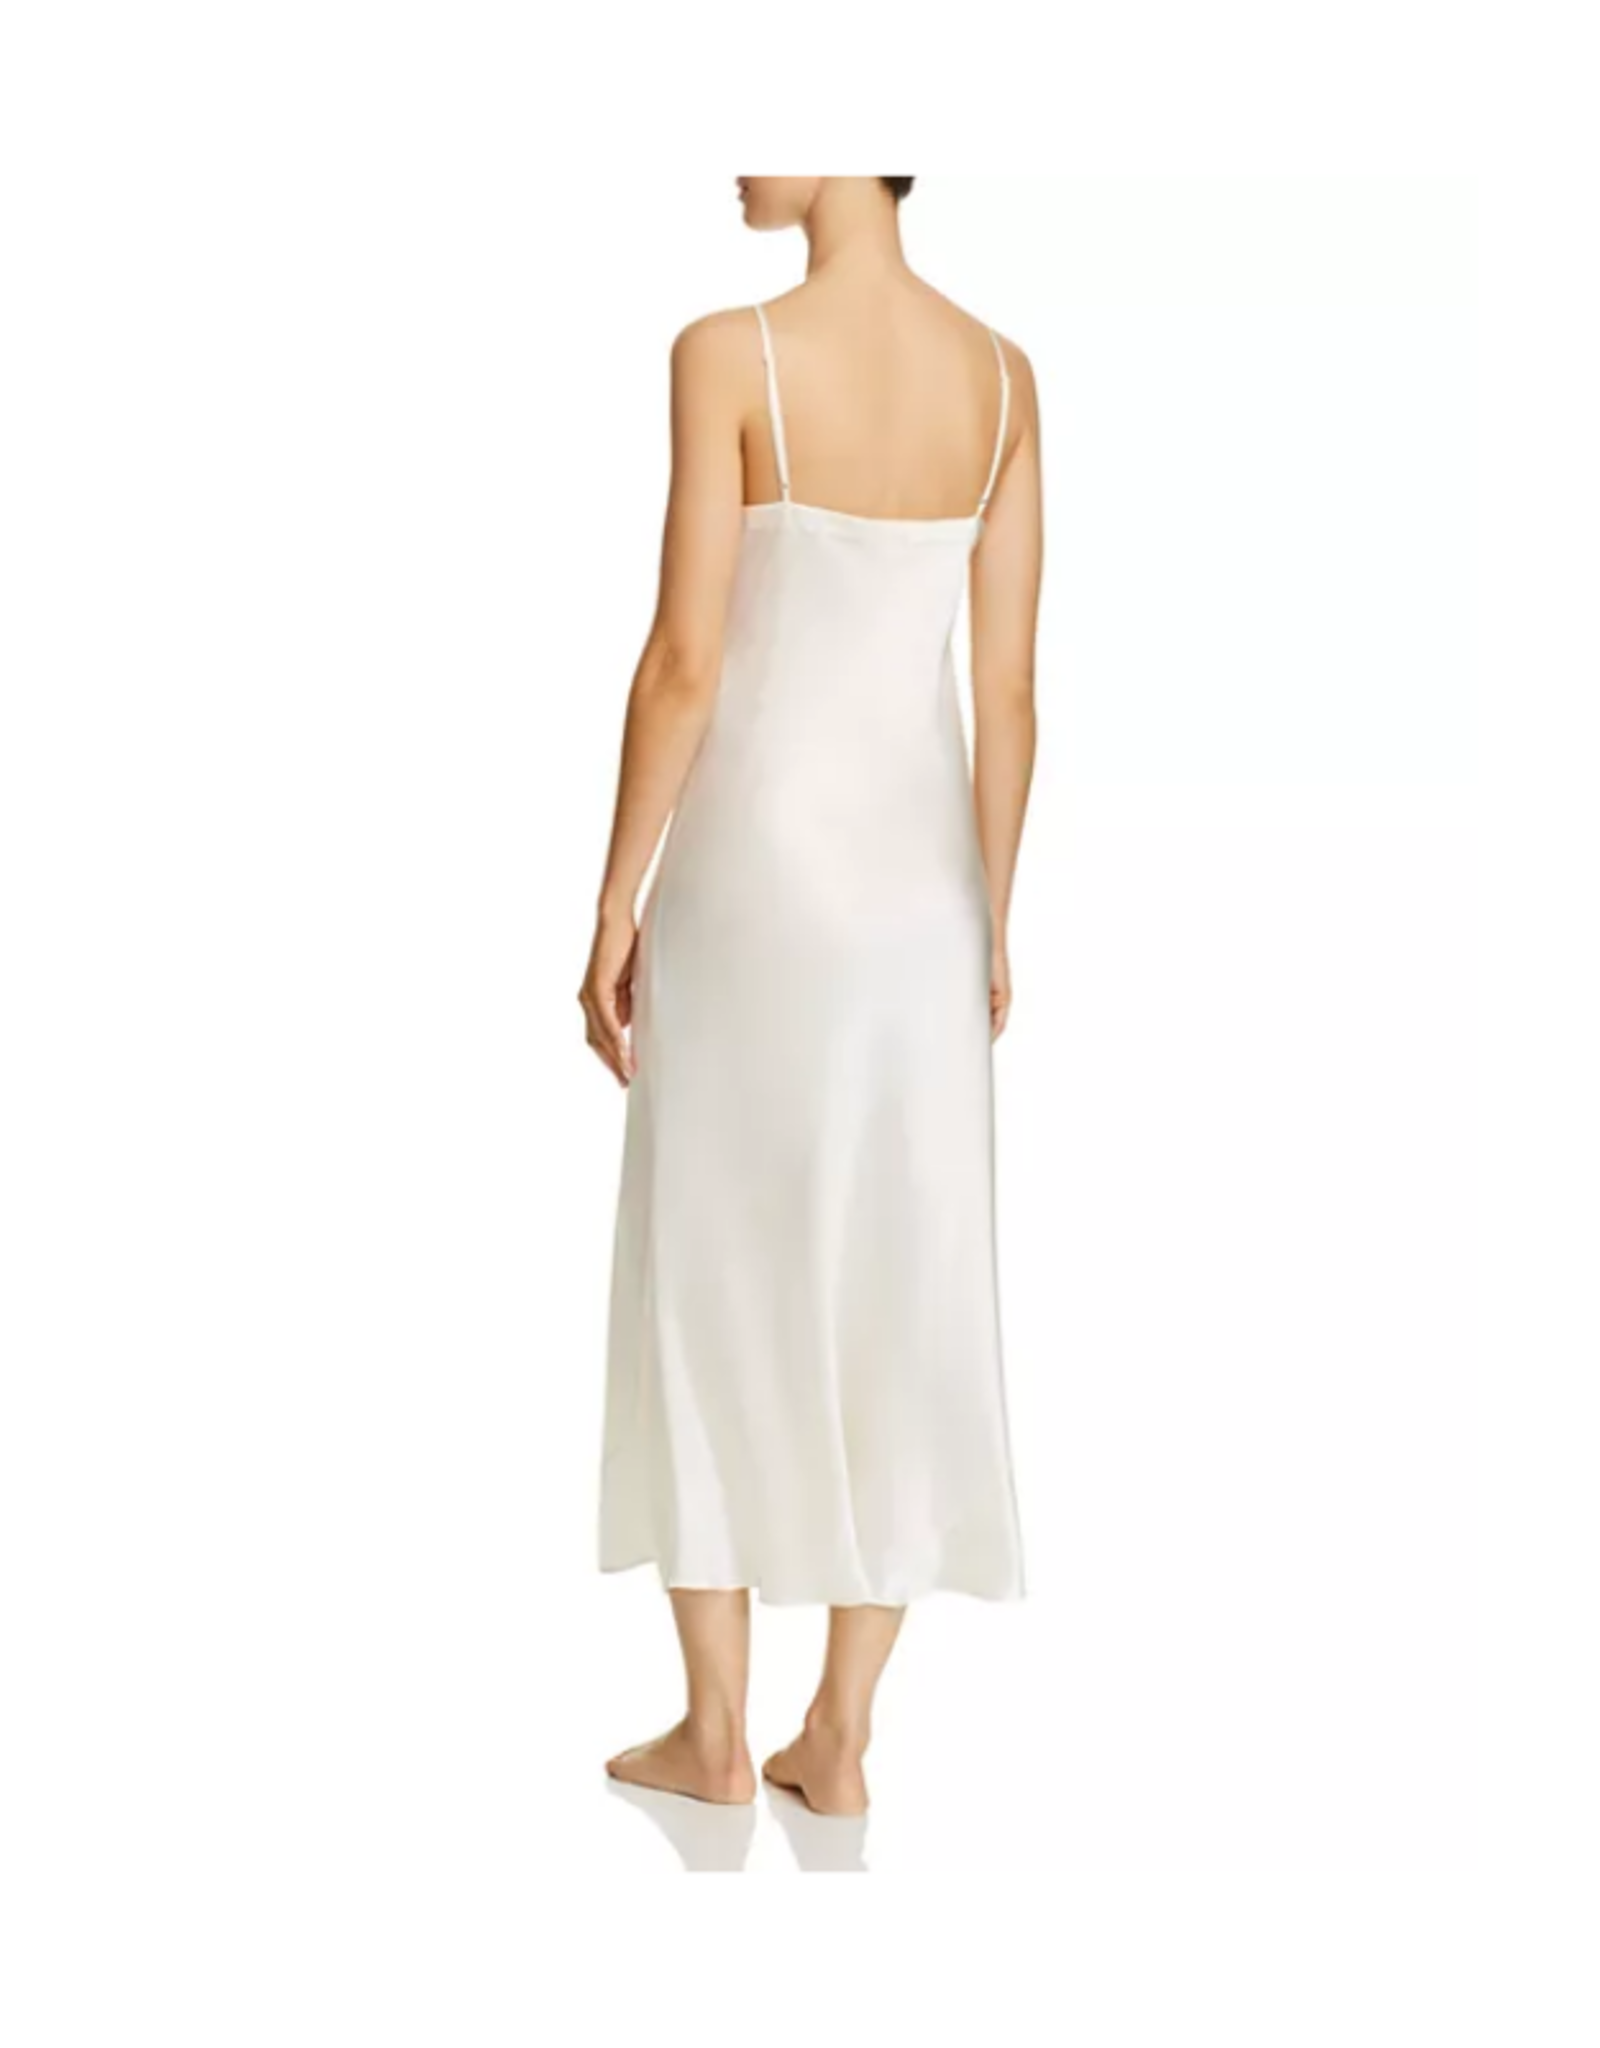 Ginia Silk V Neck Slip Dress - Creme